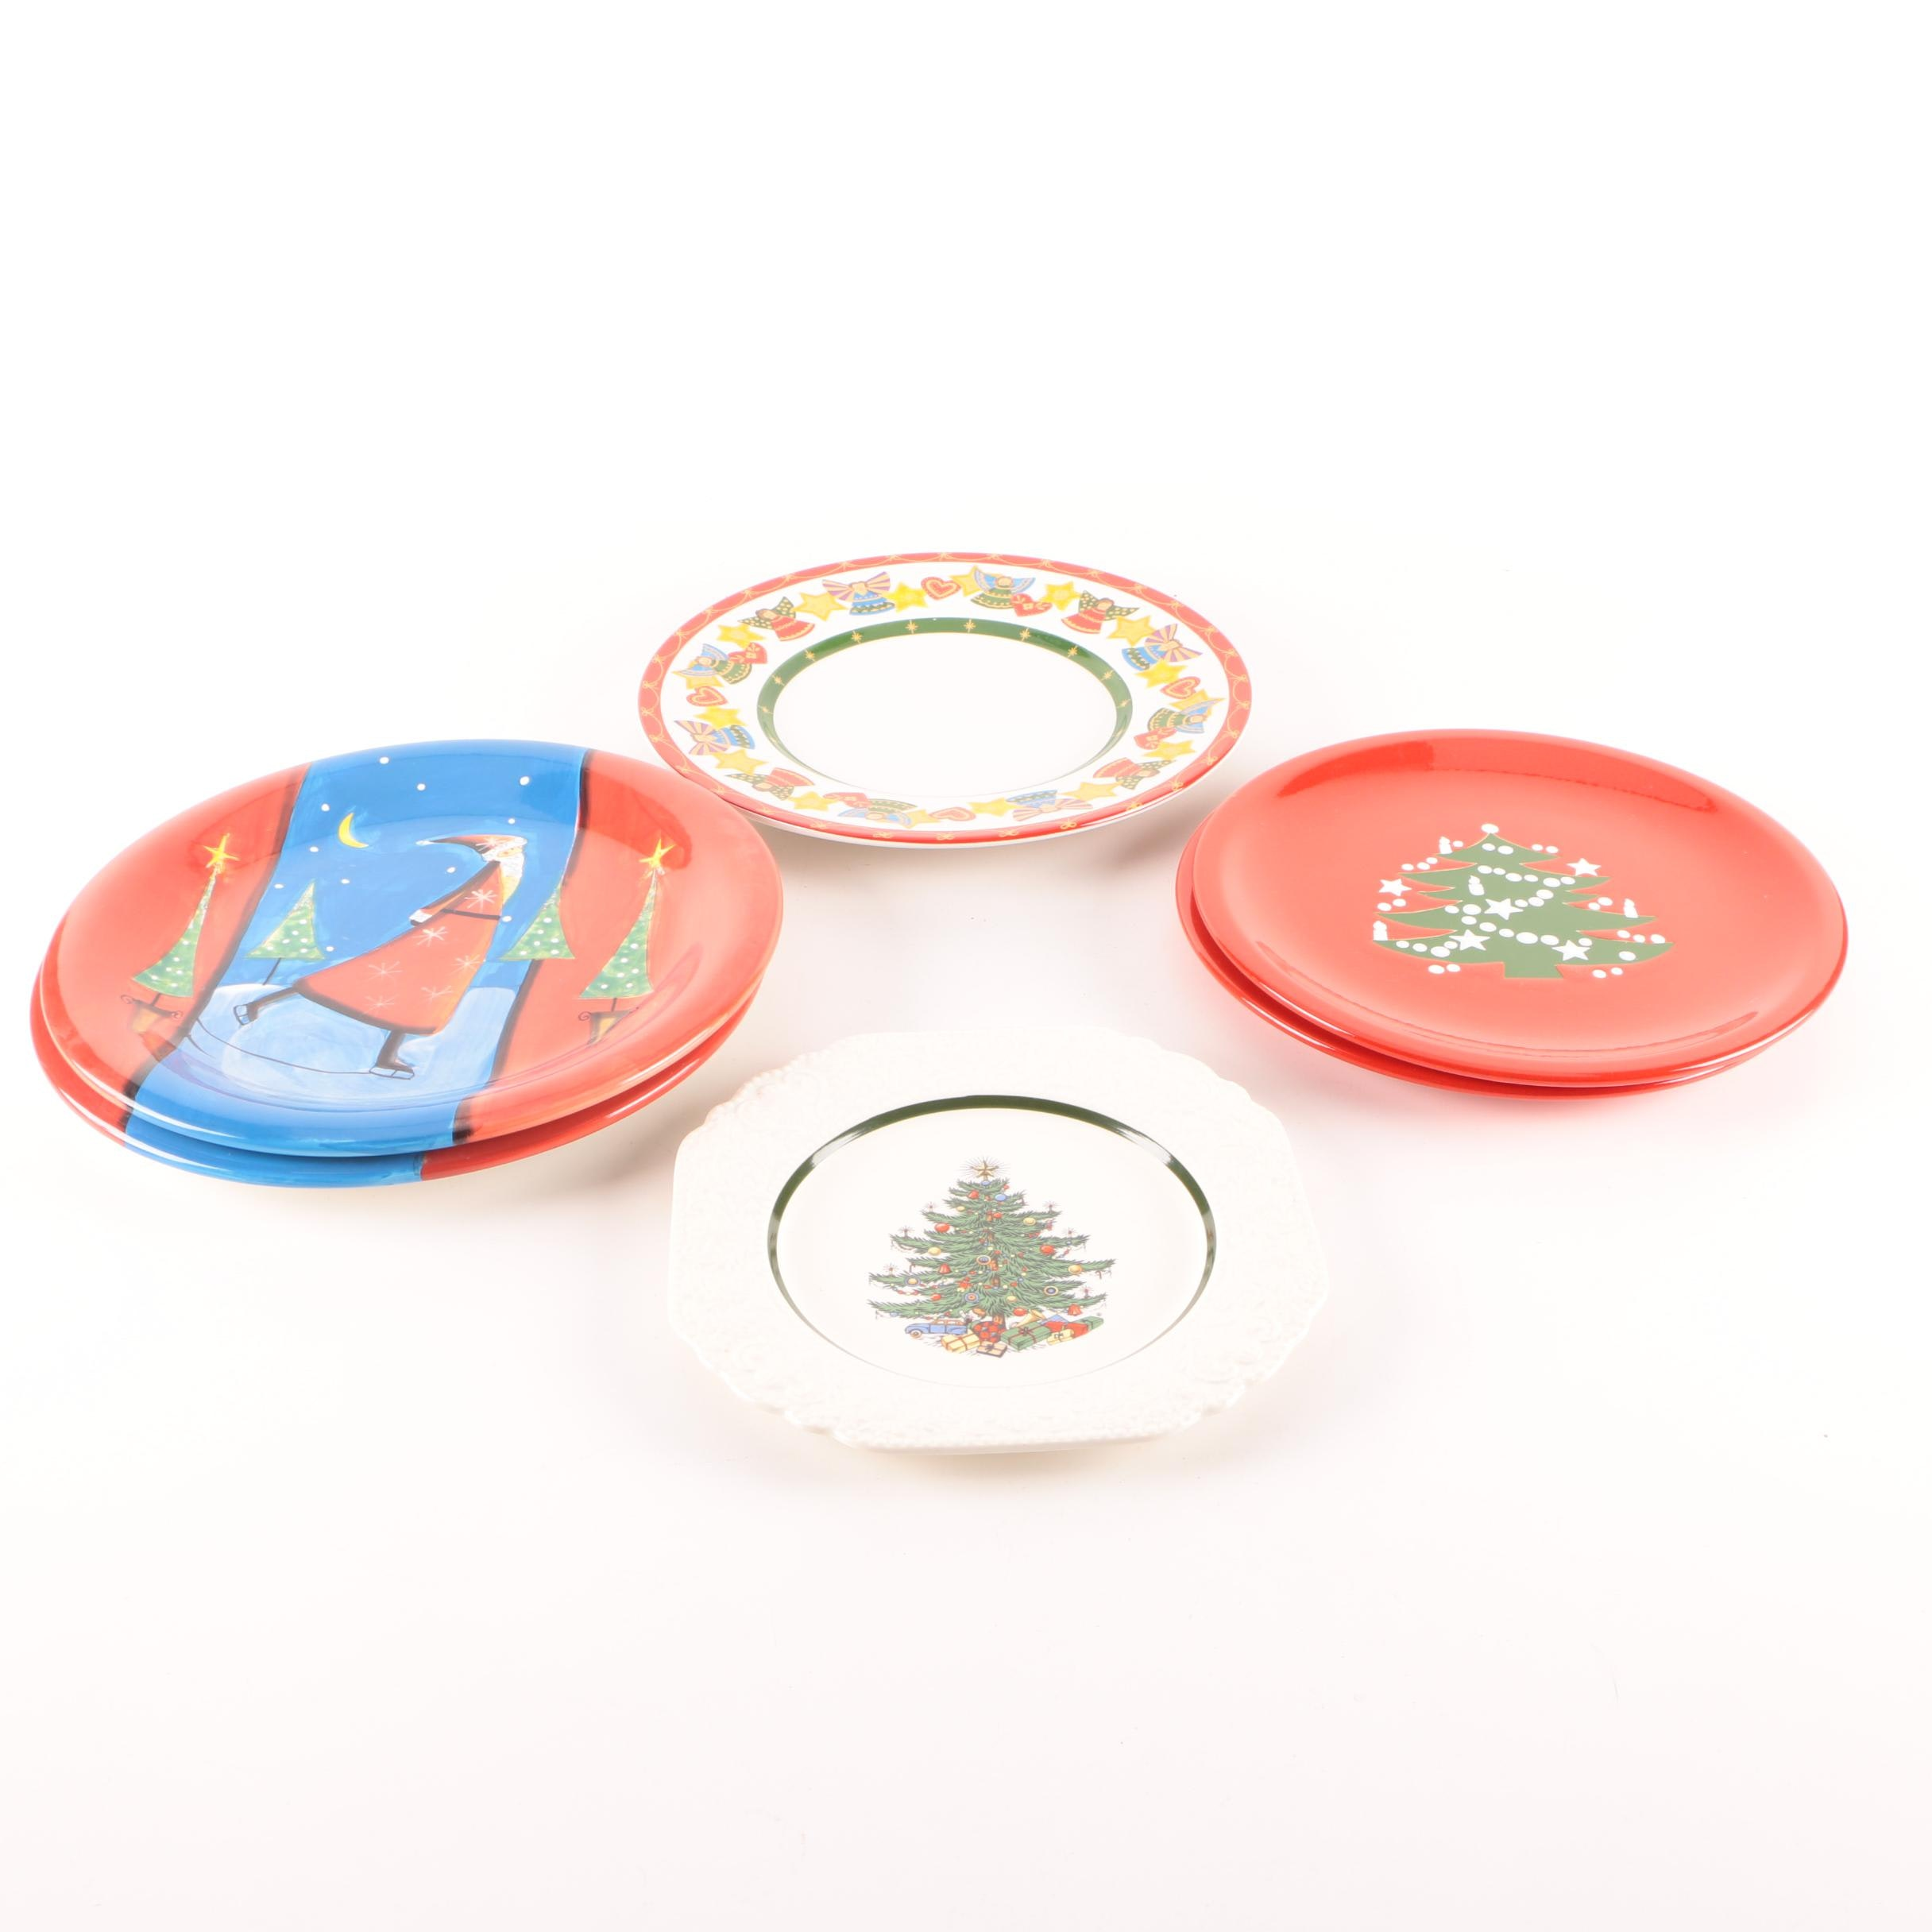 Christmas Ceramic Tableware Featuring Cuthbertson